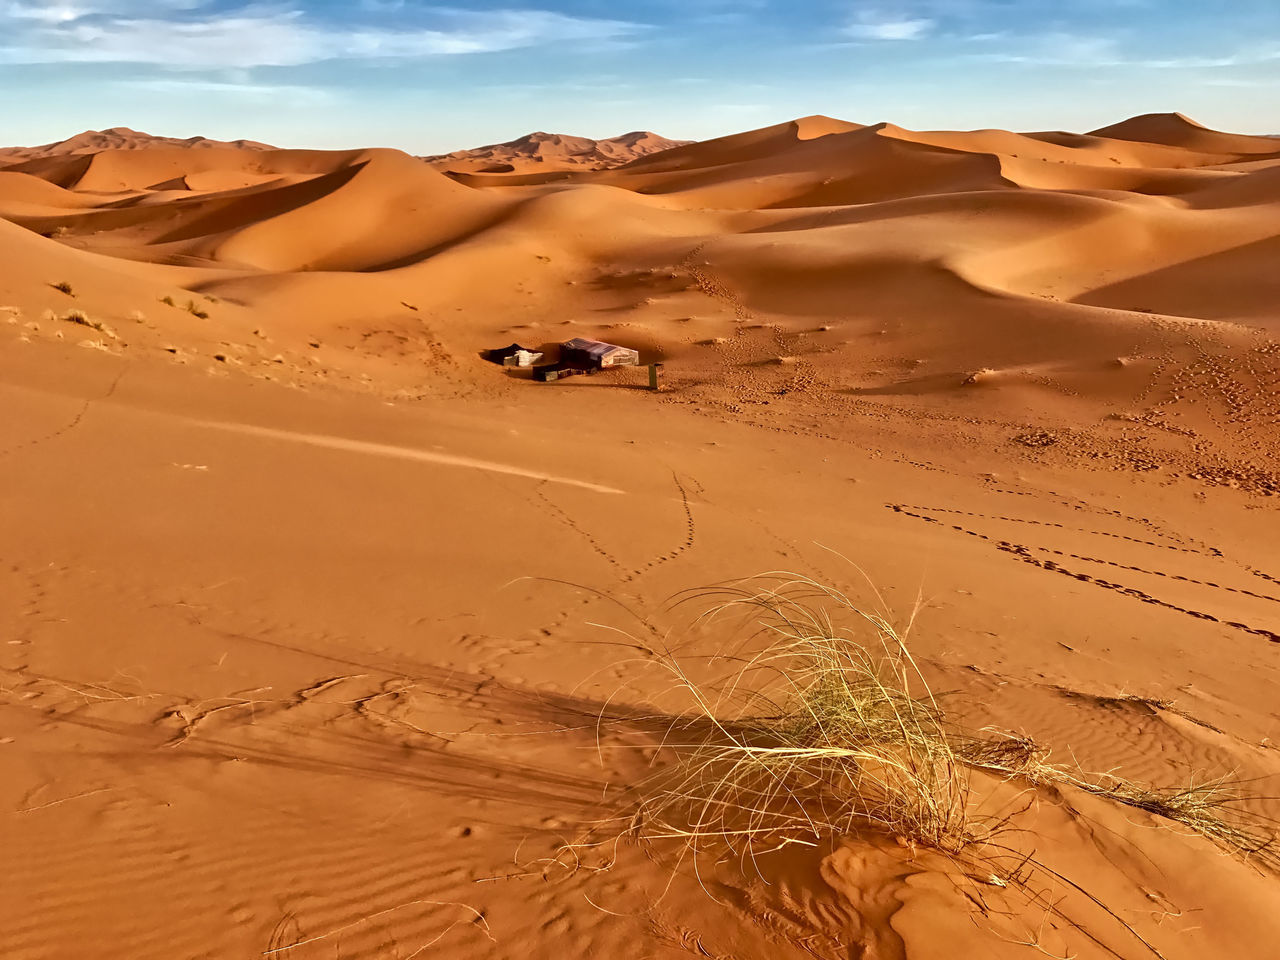 A Berber bivouac in the Sahara desert near Merzouga in Morocco. Beauty In Nature Berber  Bivouac Clouds Day Desert Grass Landscape Merzouga Morocco Nature No People Outdoors Sahara Sand Sand Dune Scenics Sky Sunlight Travel